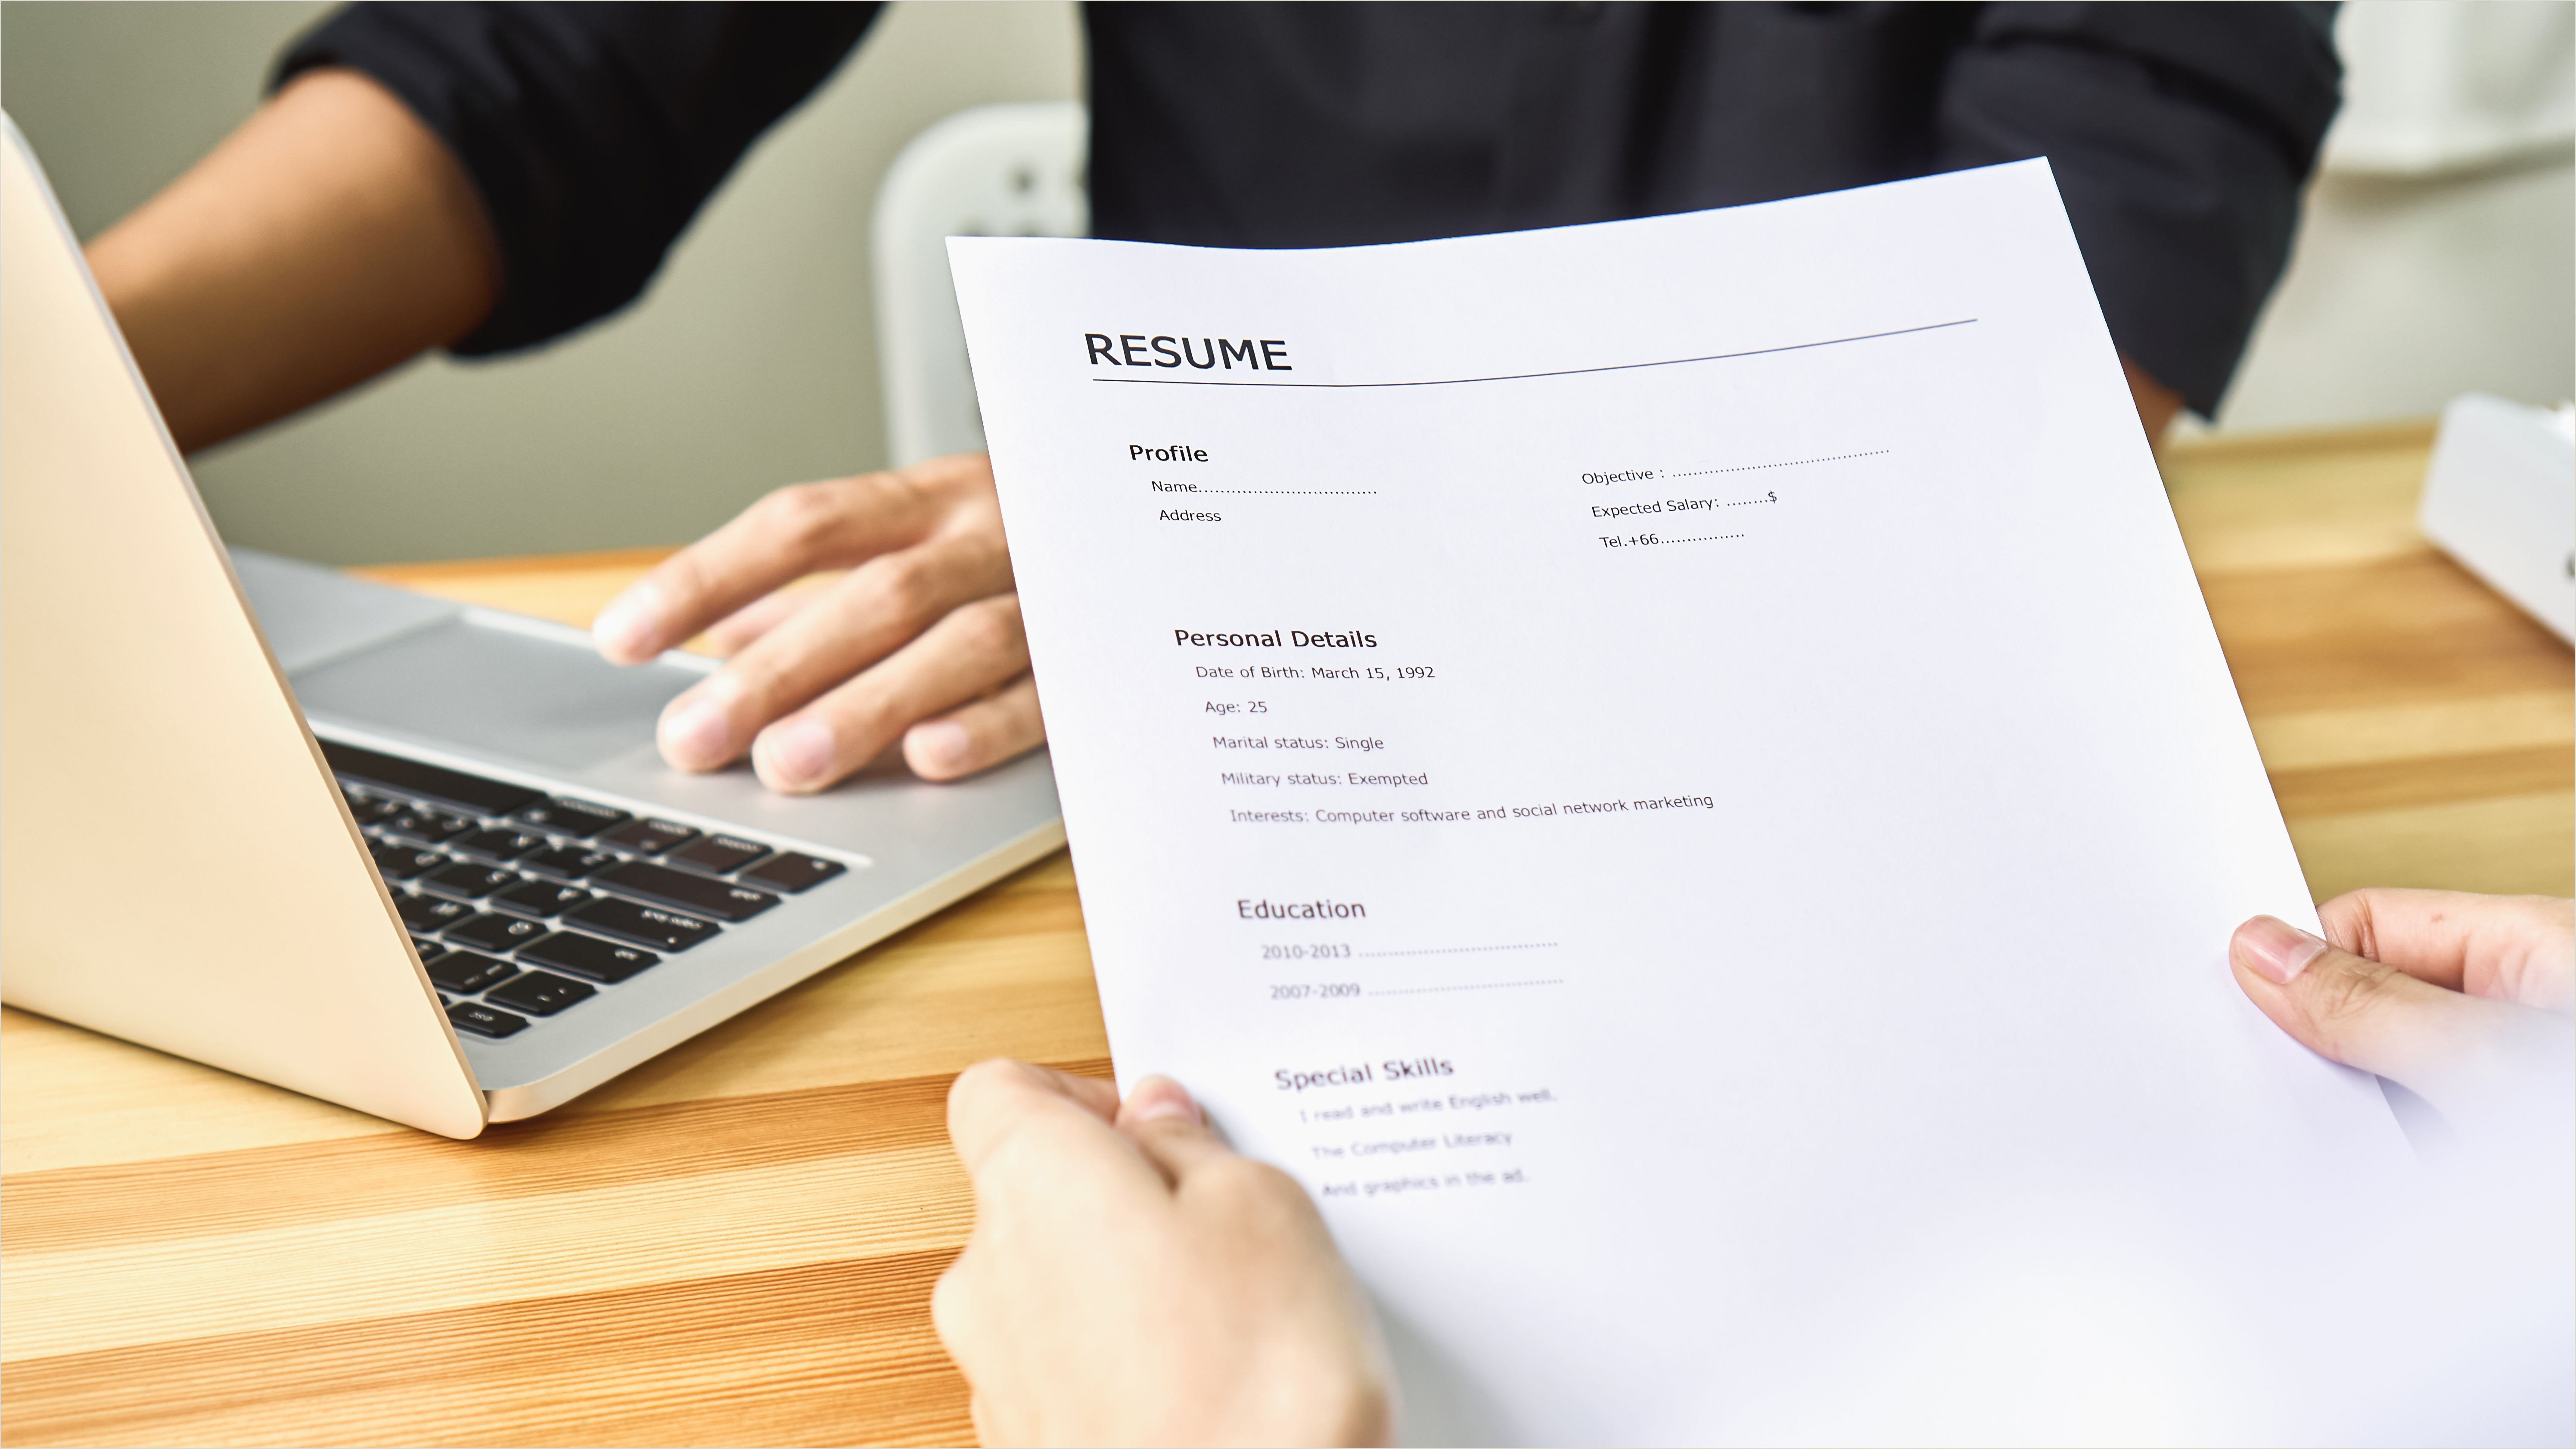 Cv format for Job Application In Canada Standard Settings for Resume Margins